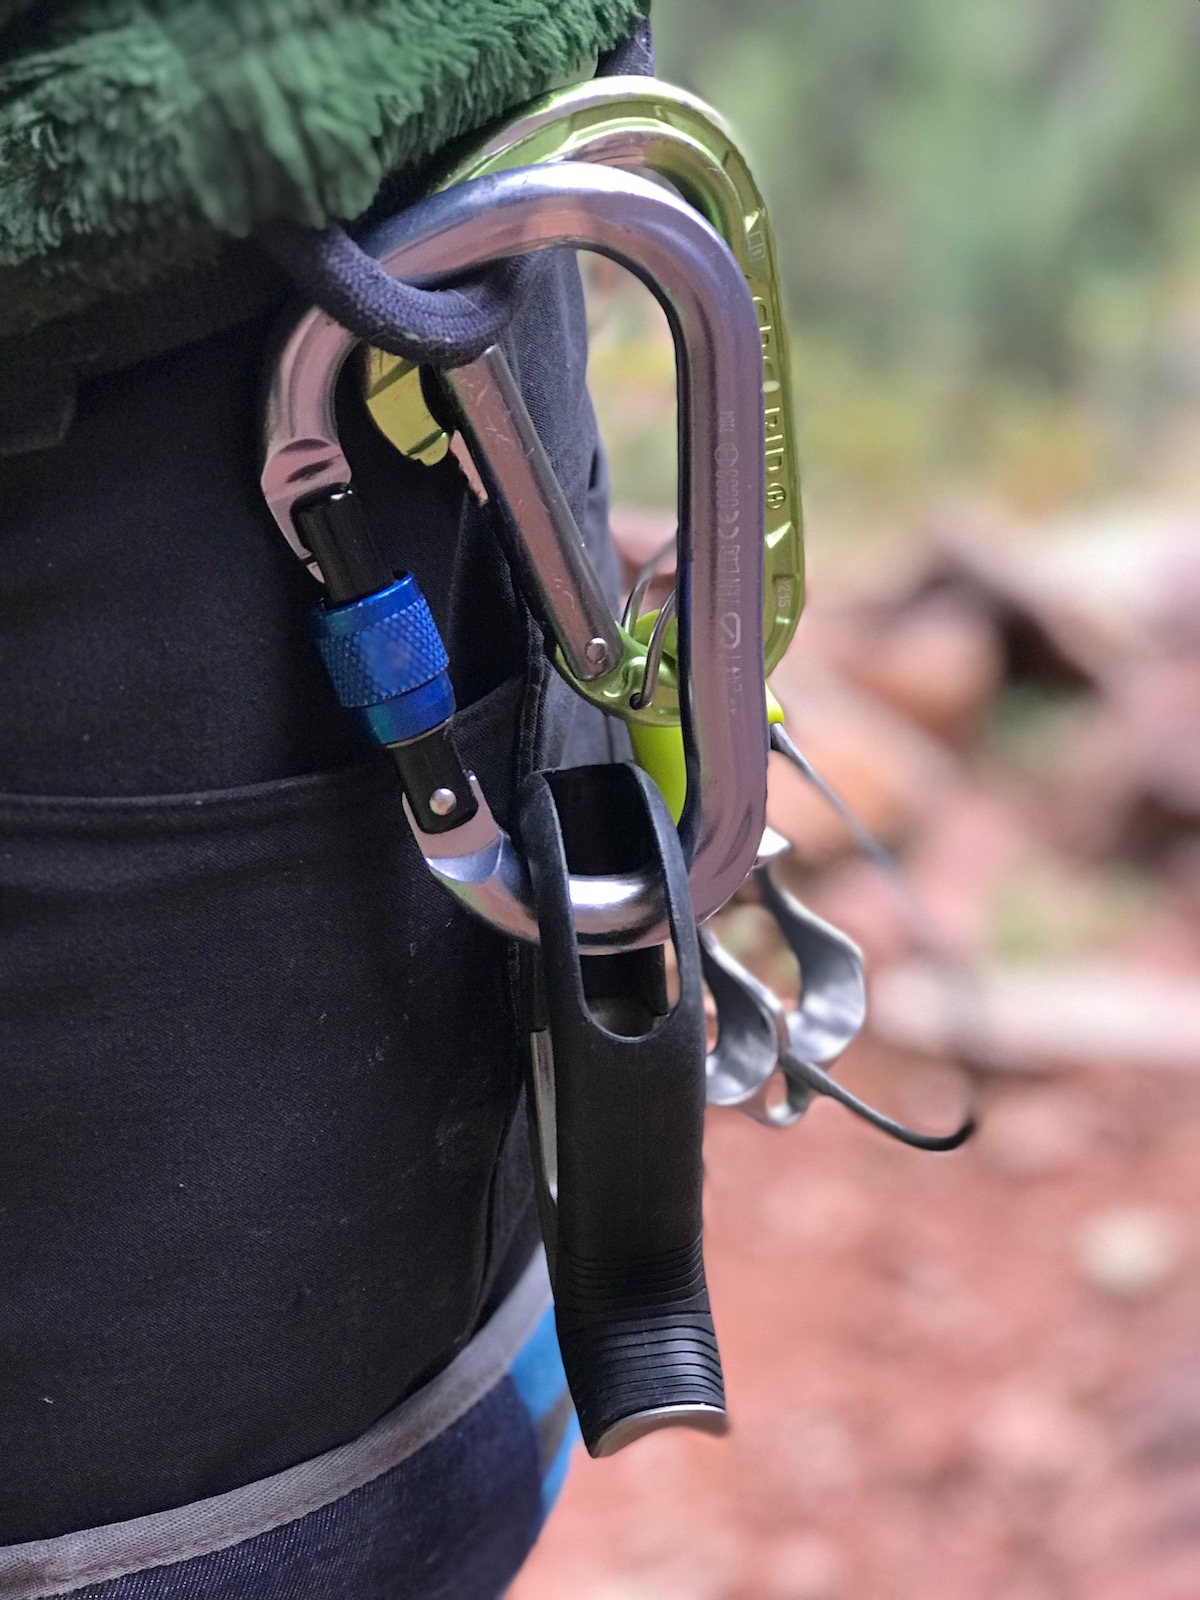 The Black Diamond ATC Pilot (foreground) racked on a harness with the Edelrid Mega Jul. [Photo] Chris Van Leuven